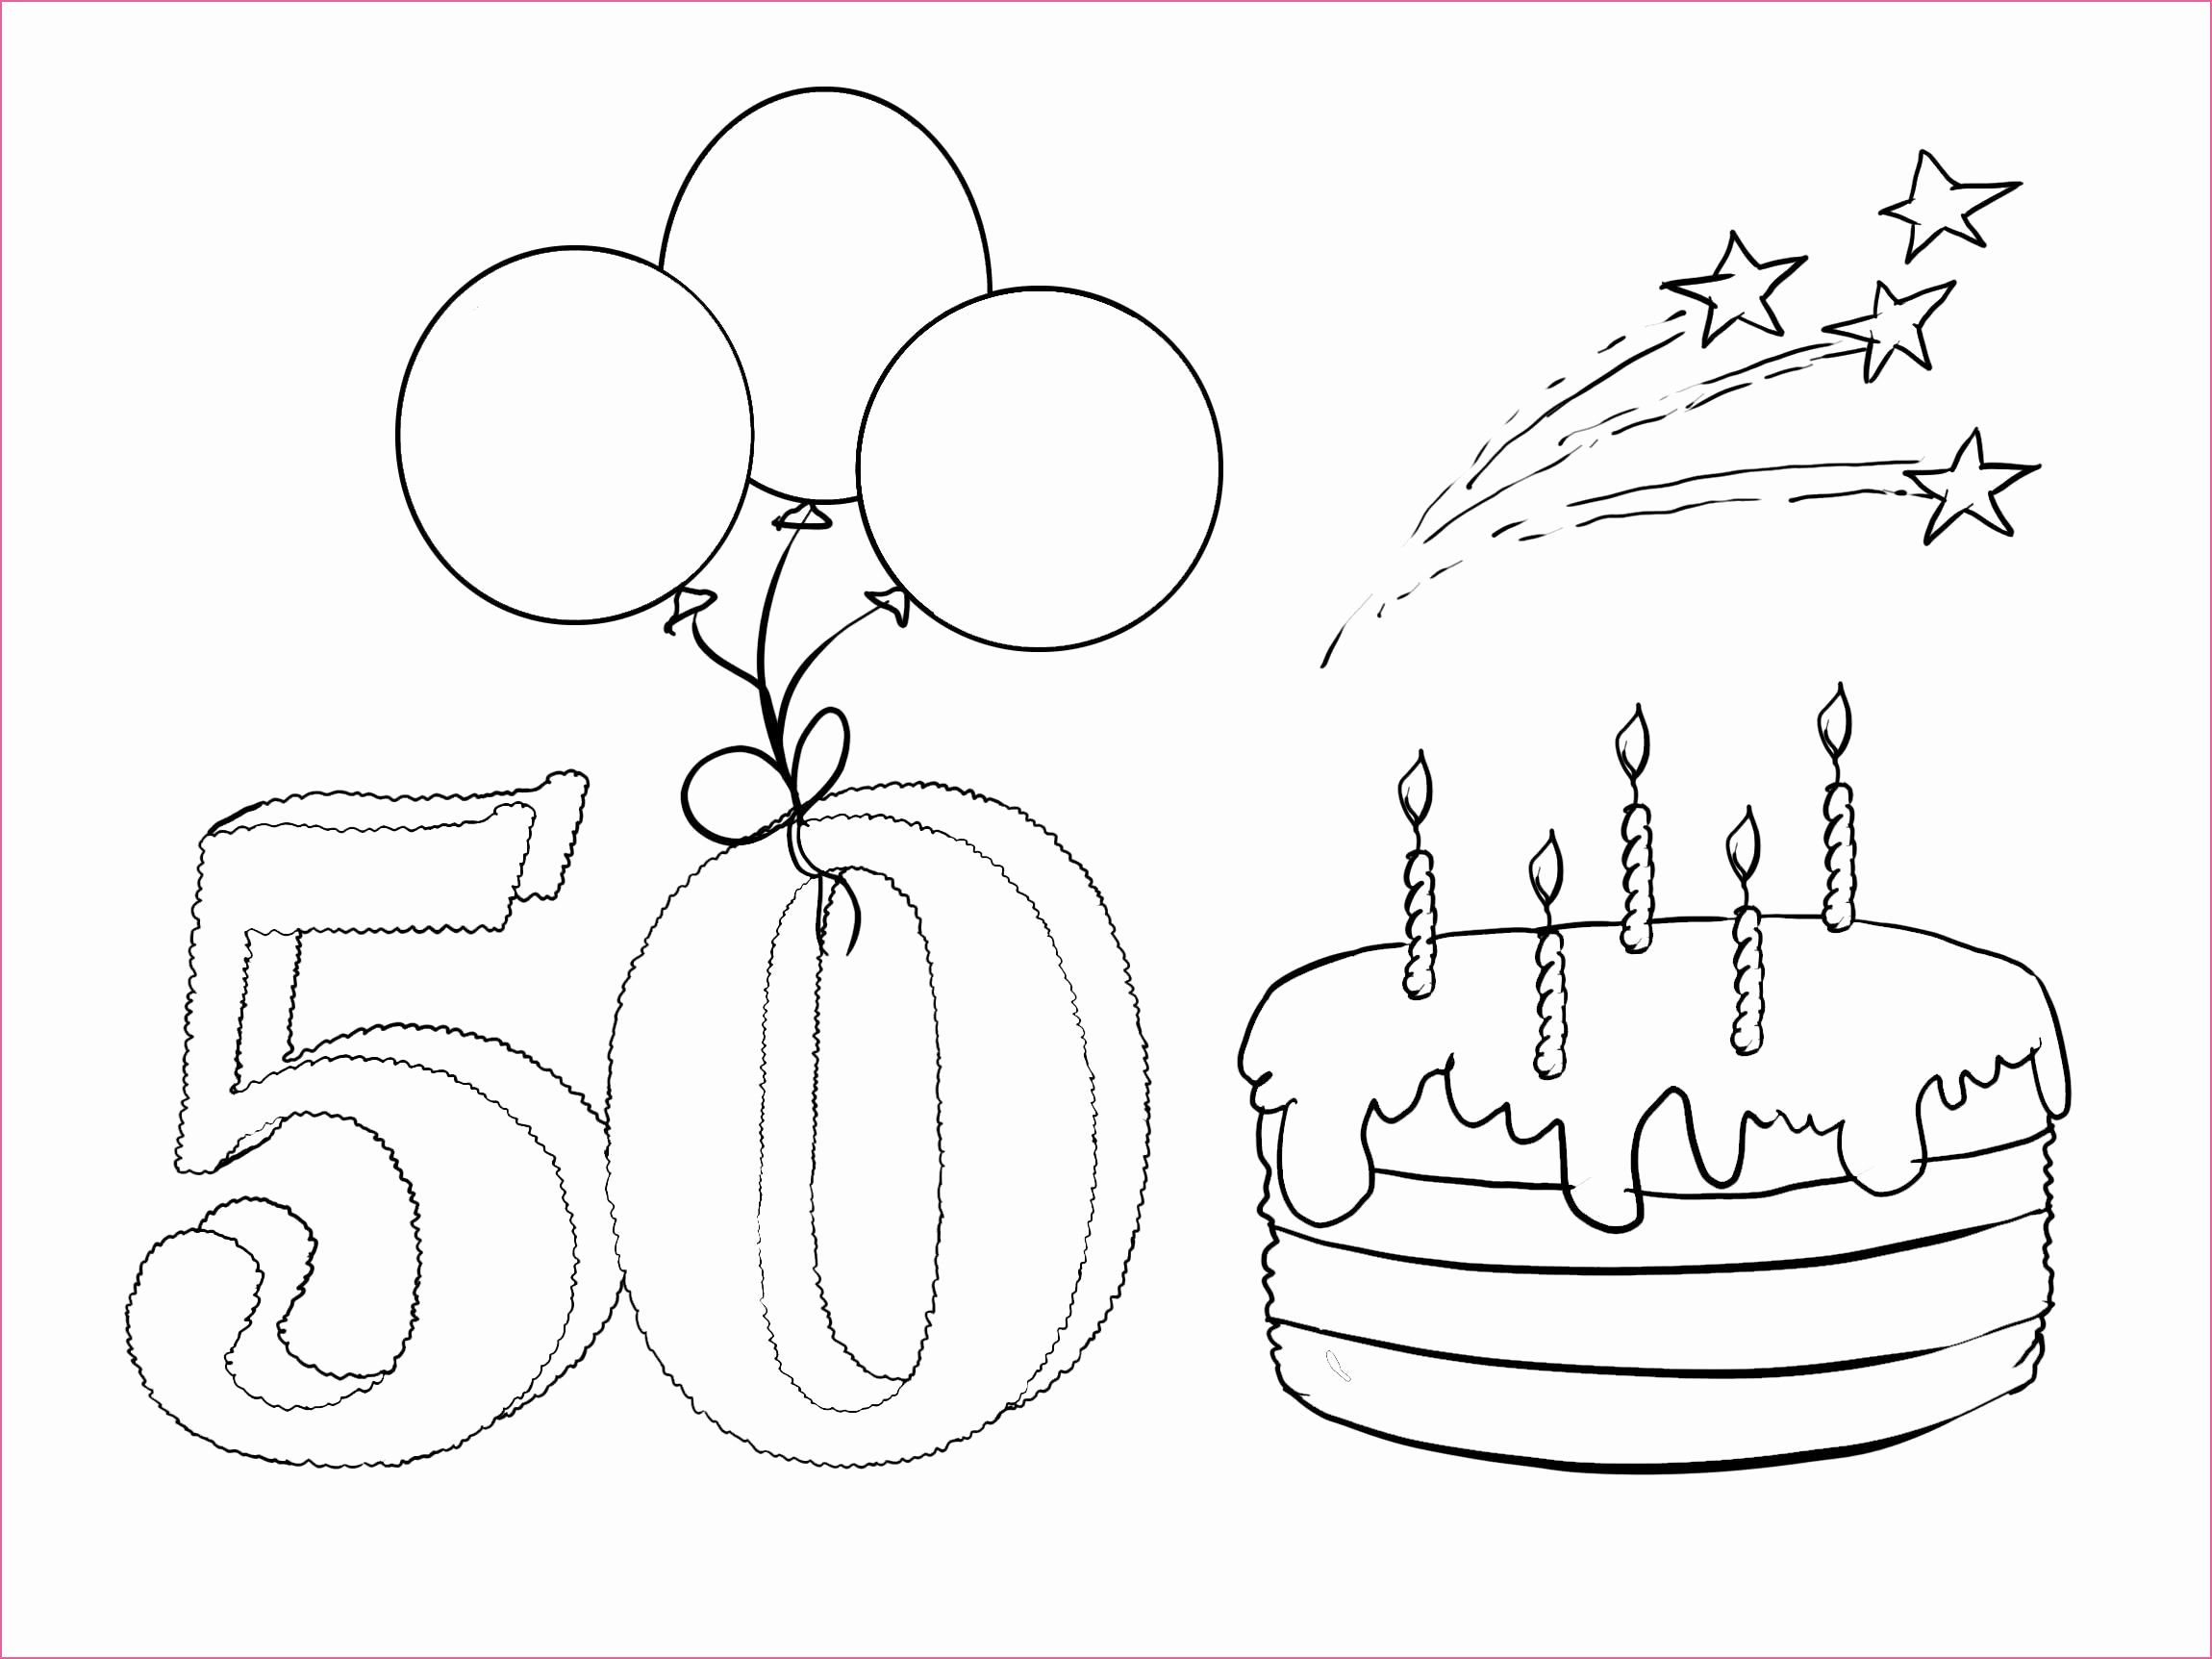 First Birthday Coloring Pages Awesome 17 Geburtstag Birthday Coloring Pages Marque Ausmalbi Birthday Coloring Pages Valentines Day Coloring Page Coloring Pages